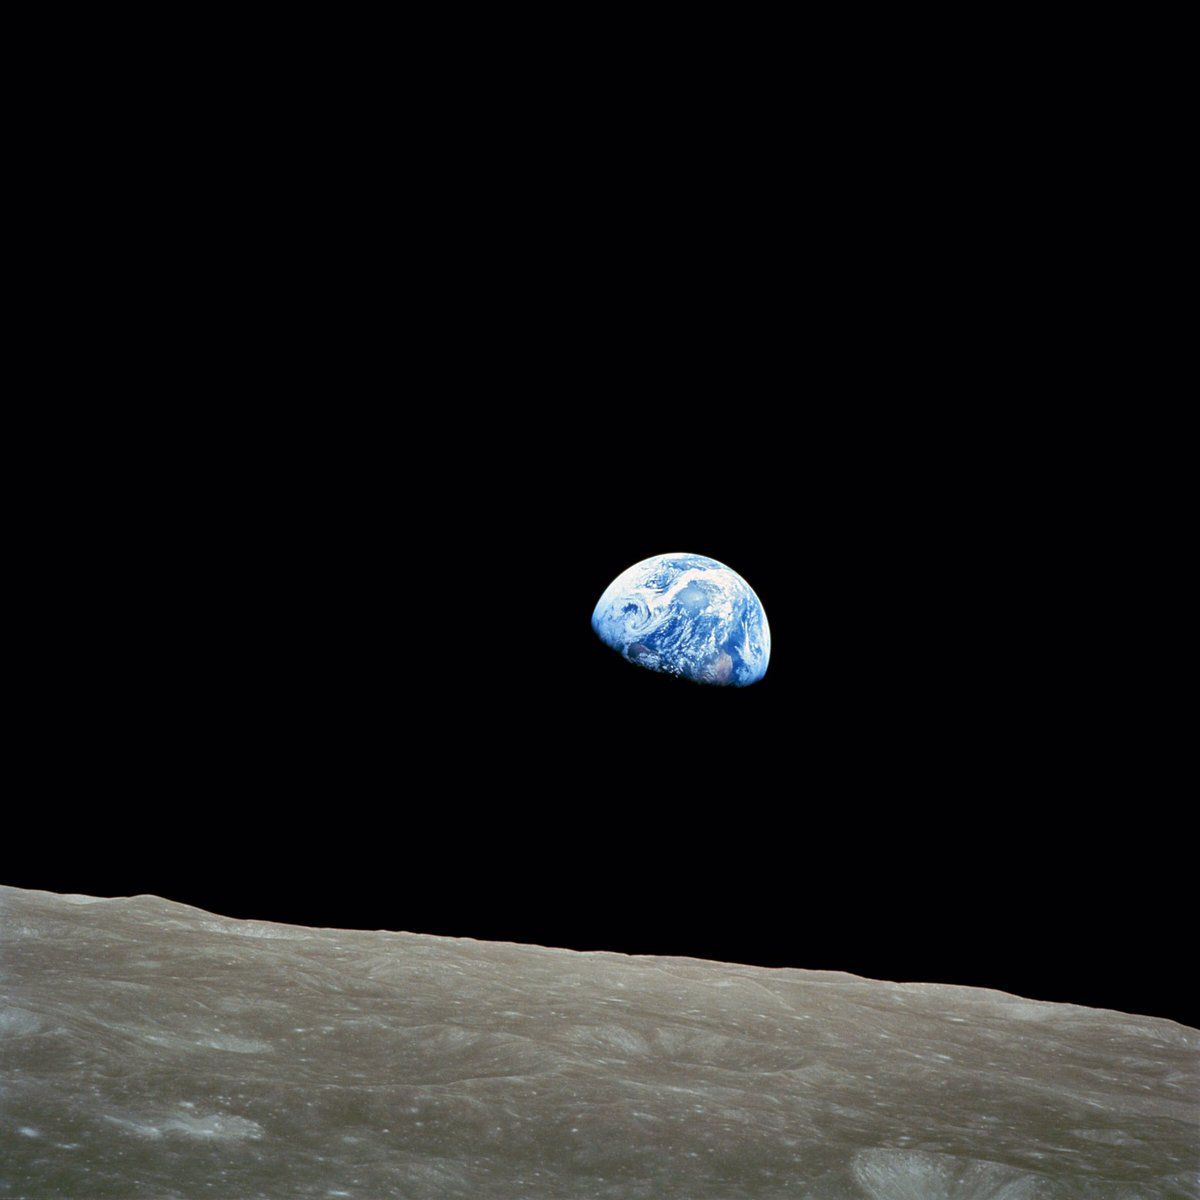 """""""Earthrise"""" was taken on Xmas 50 years ago (Anders, Apollo 8).  Looking at this pic it feels so dumb that people still fight for religions,  think skin color makes us unlike, or exploit the fragile nature.  Our blue planet is the """"miracle"""" that we all must cherish. #OneHumanRace"""